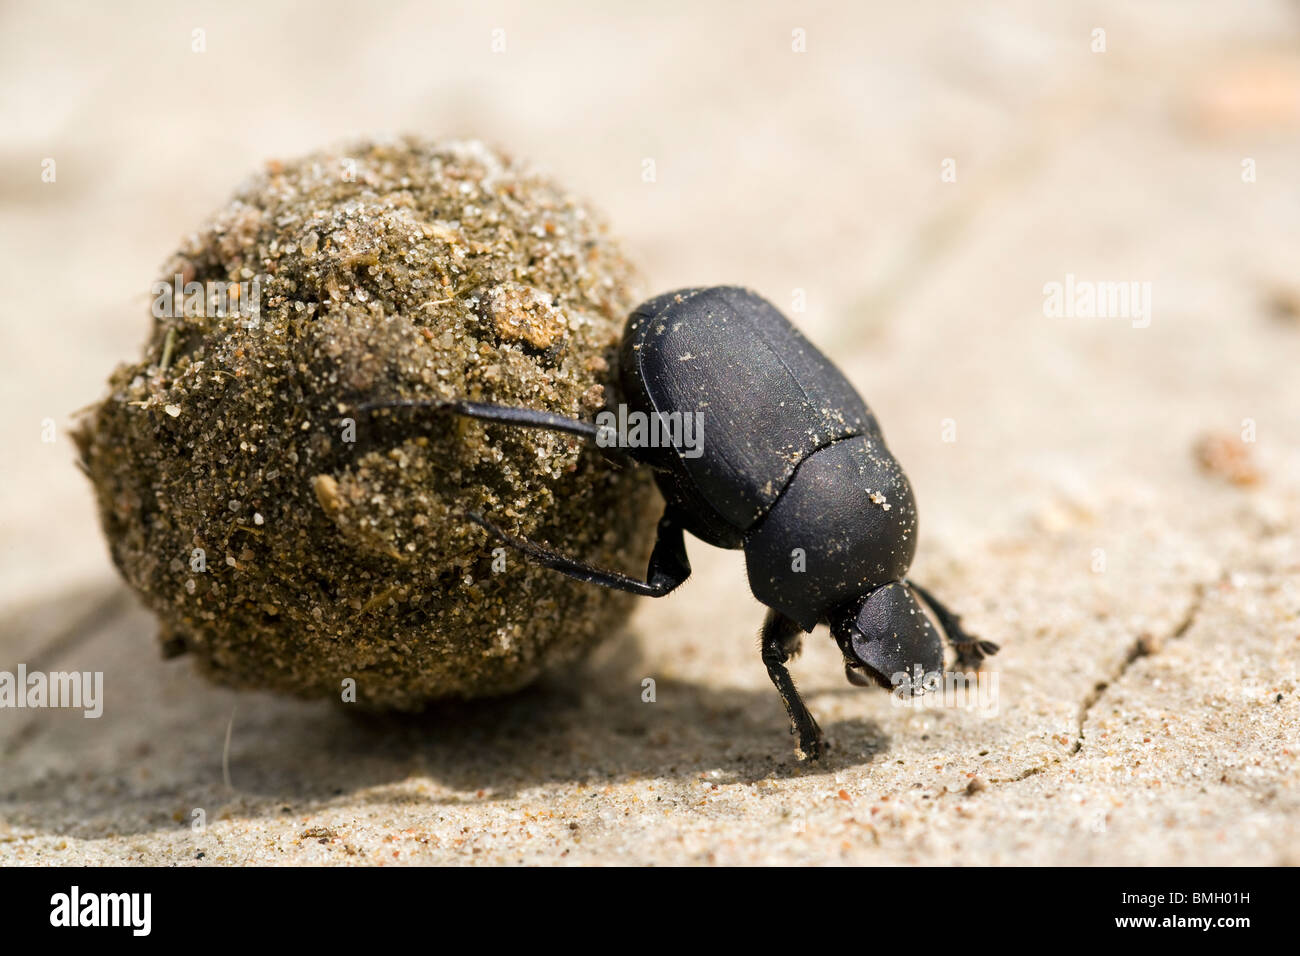 Dung Beetle - Los Novios Ranch - near Cotulla, Texas USA Stock Photo